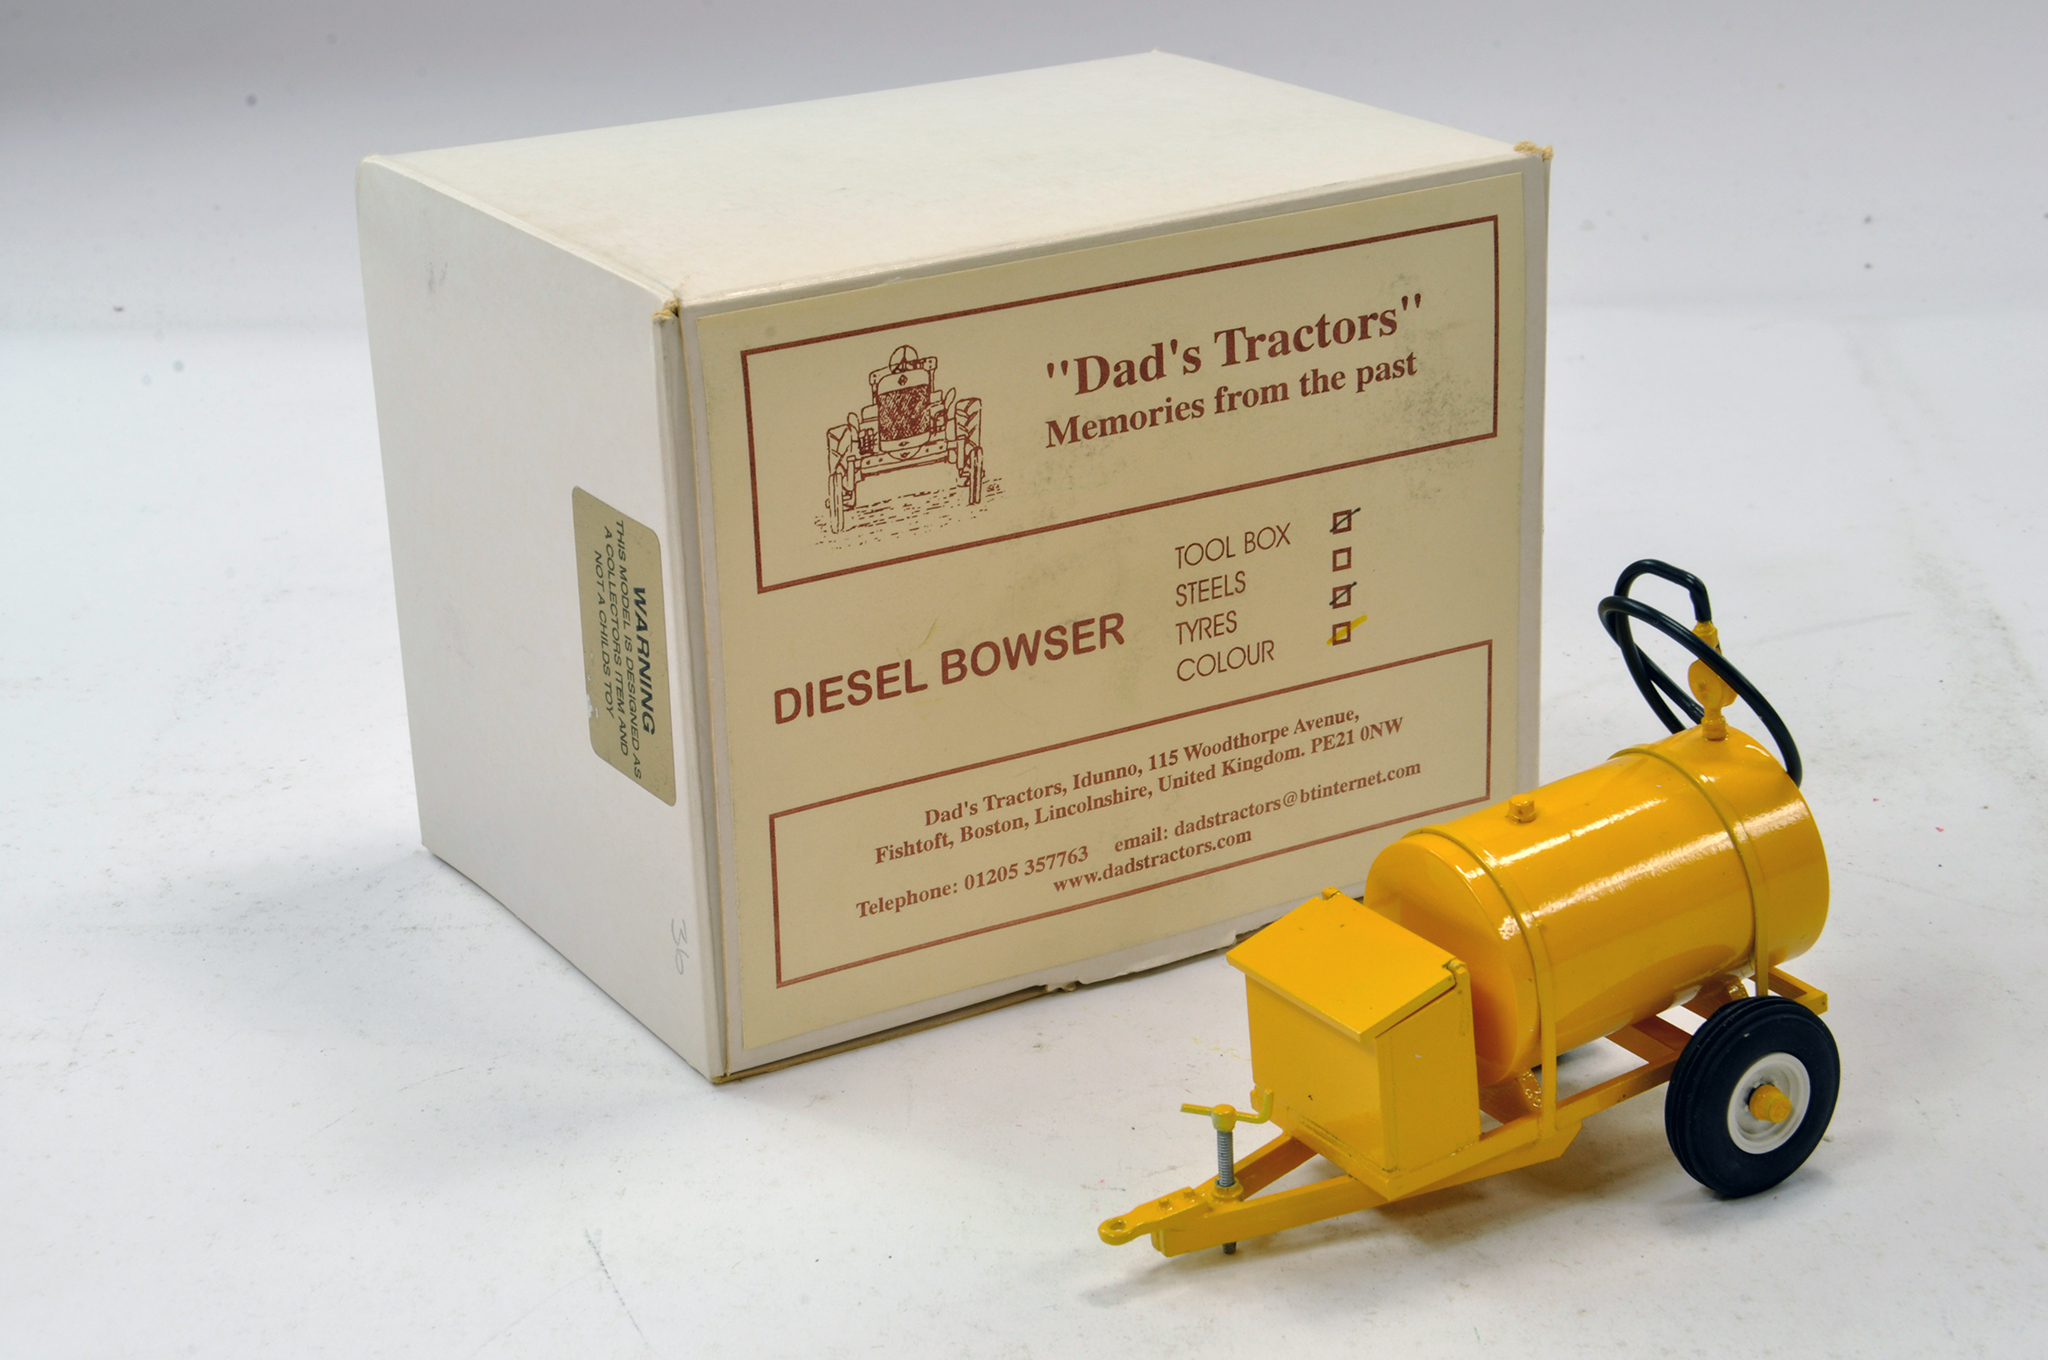 Lot 225 - Dads Tractors 1/32 Hand Built Diesel Bowser. Excellent.